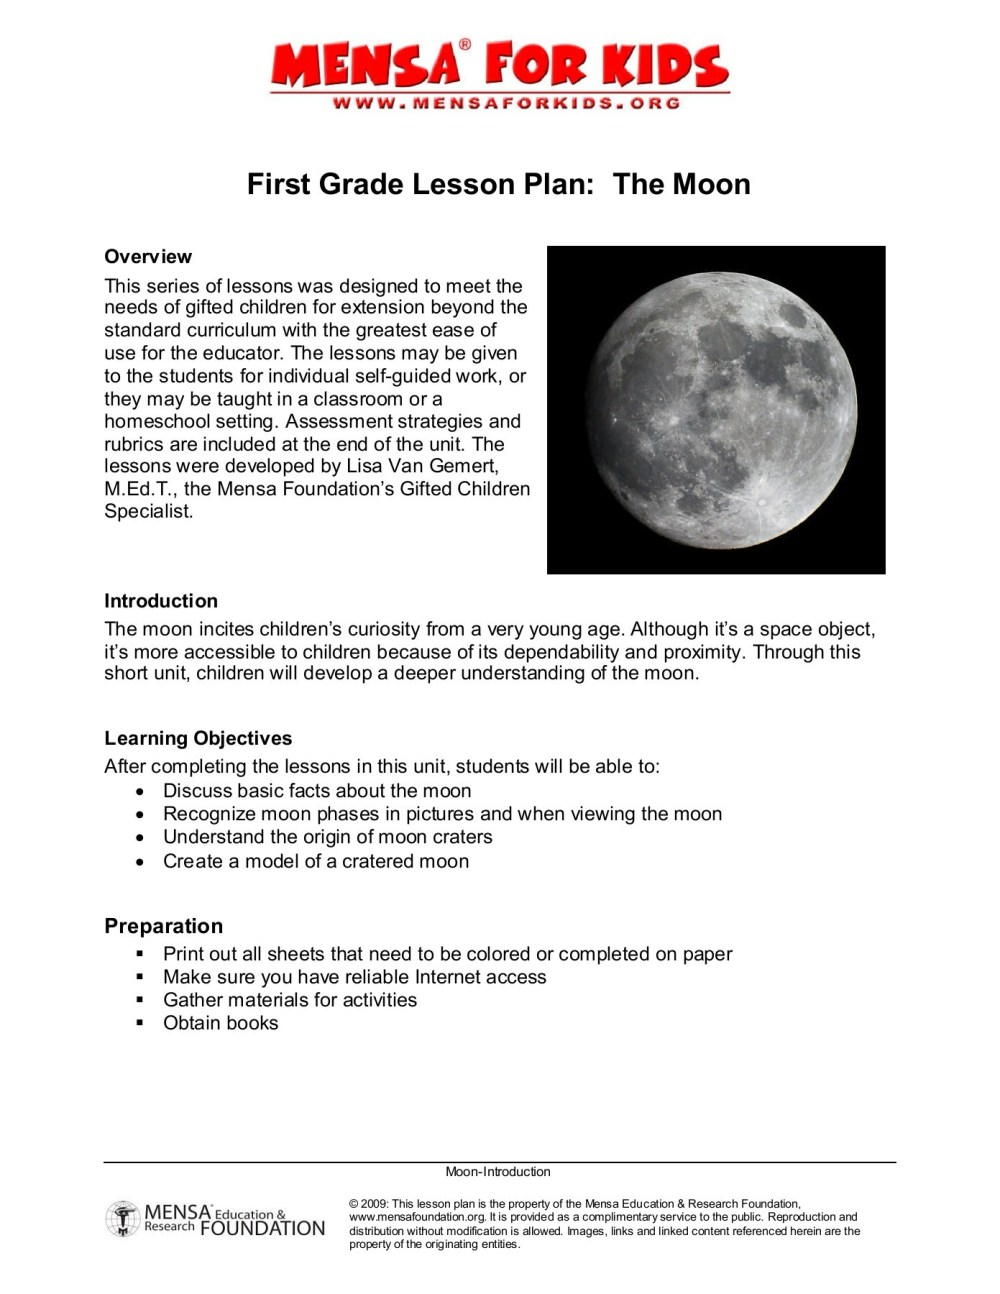 medium resolution of First Grade Lesson Plan about the Moon - American Mensa